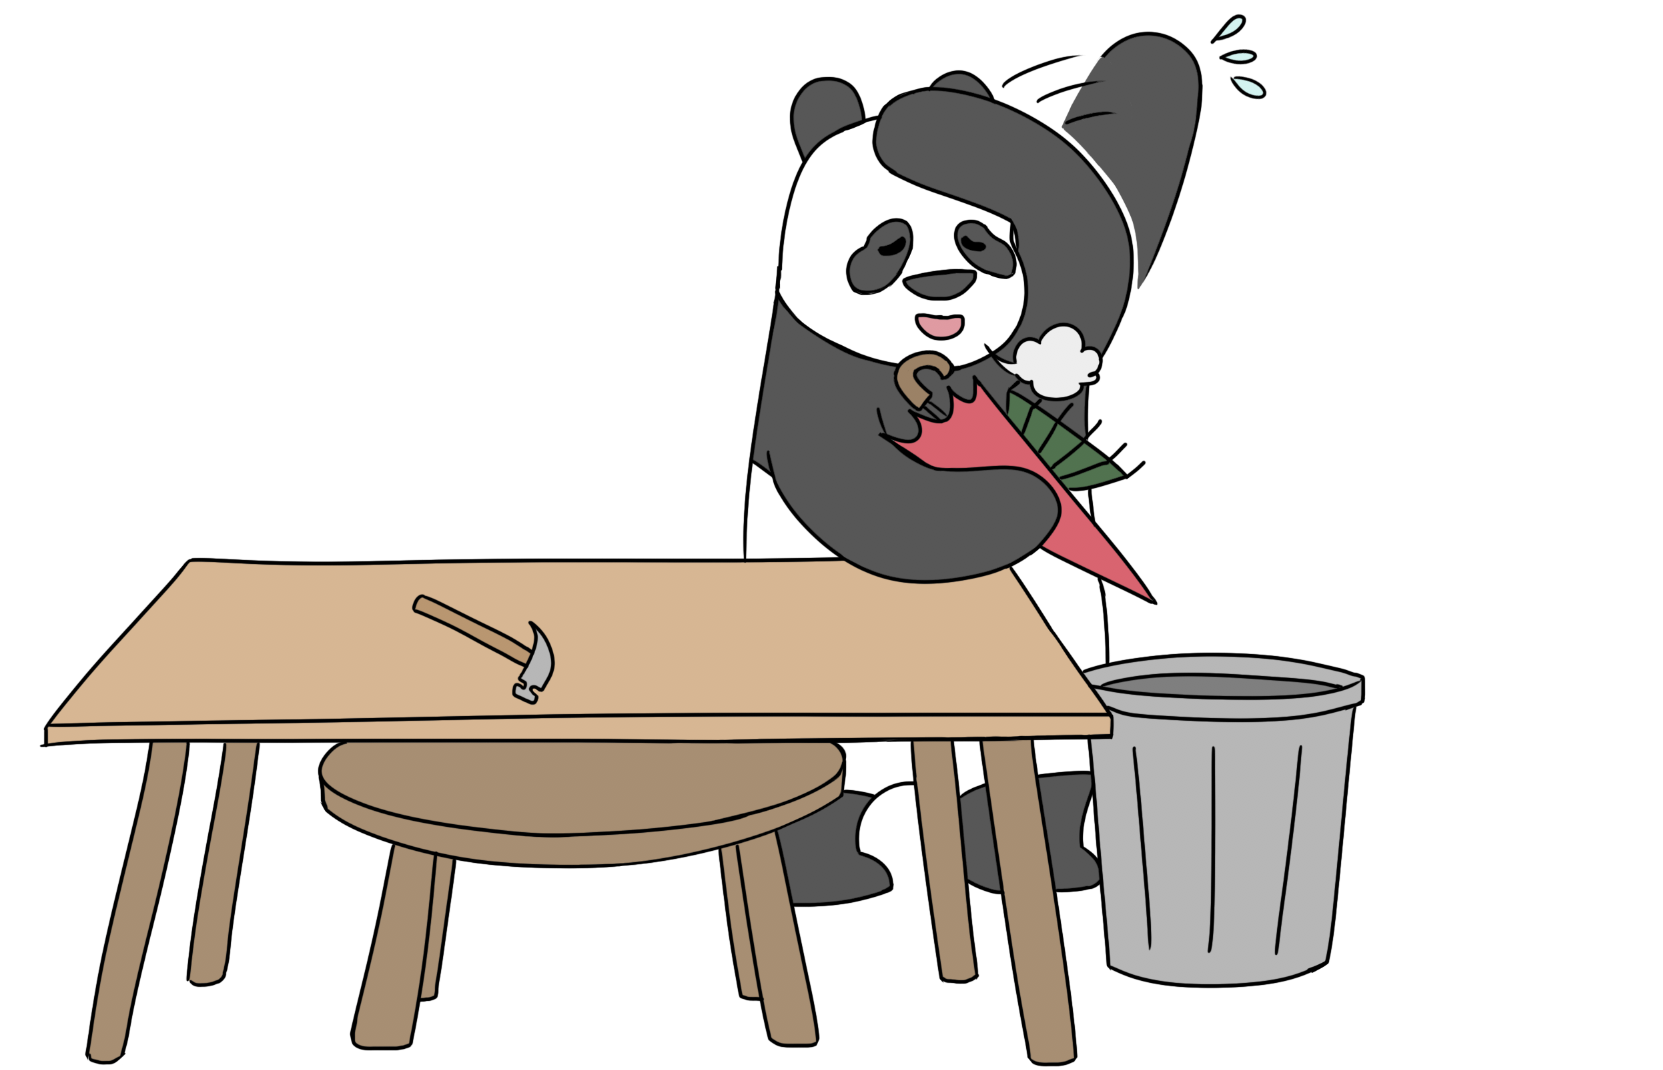 relieved panda